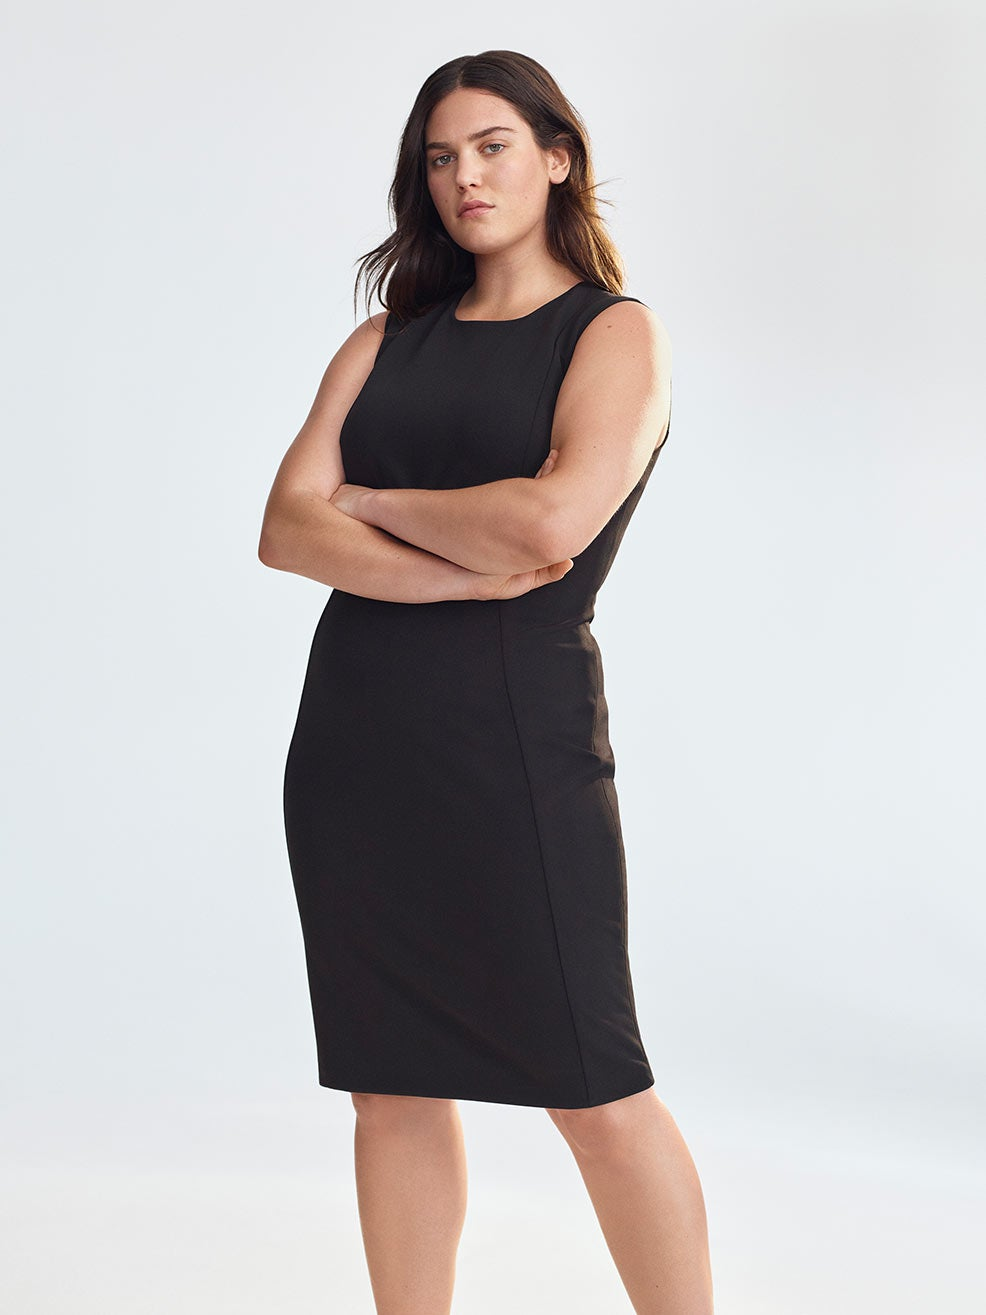 Calvin Klein Plus Sizes for Women